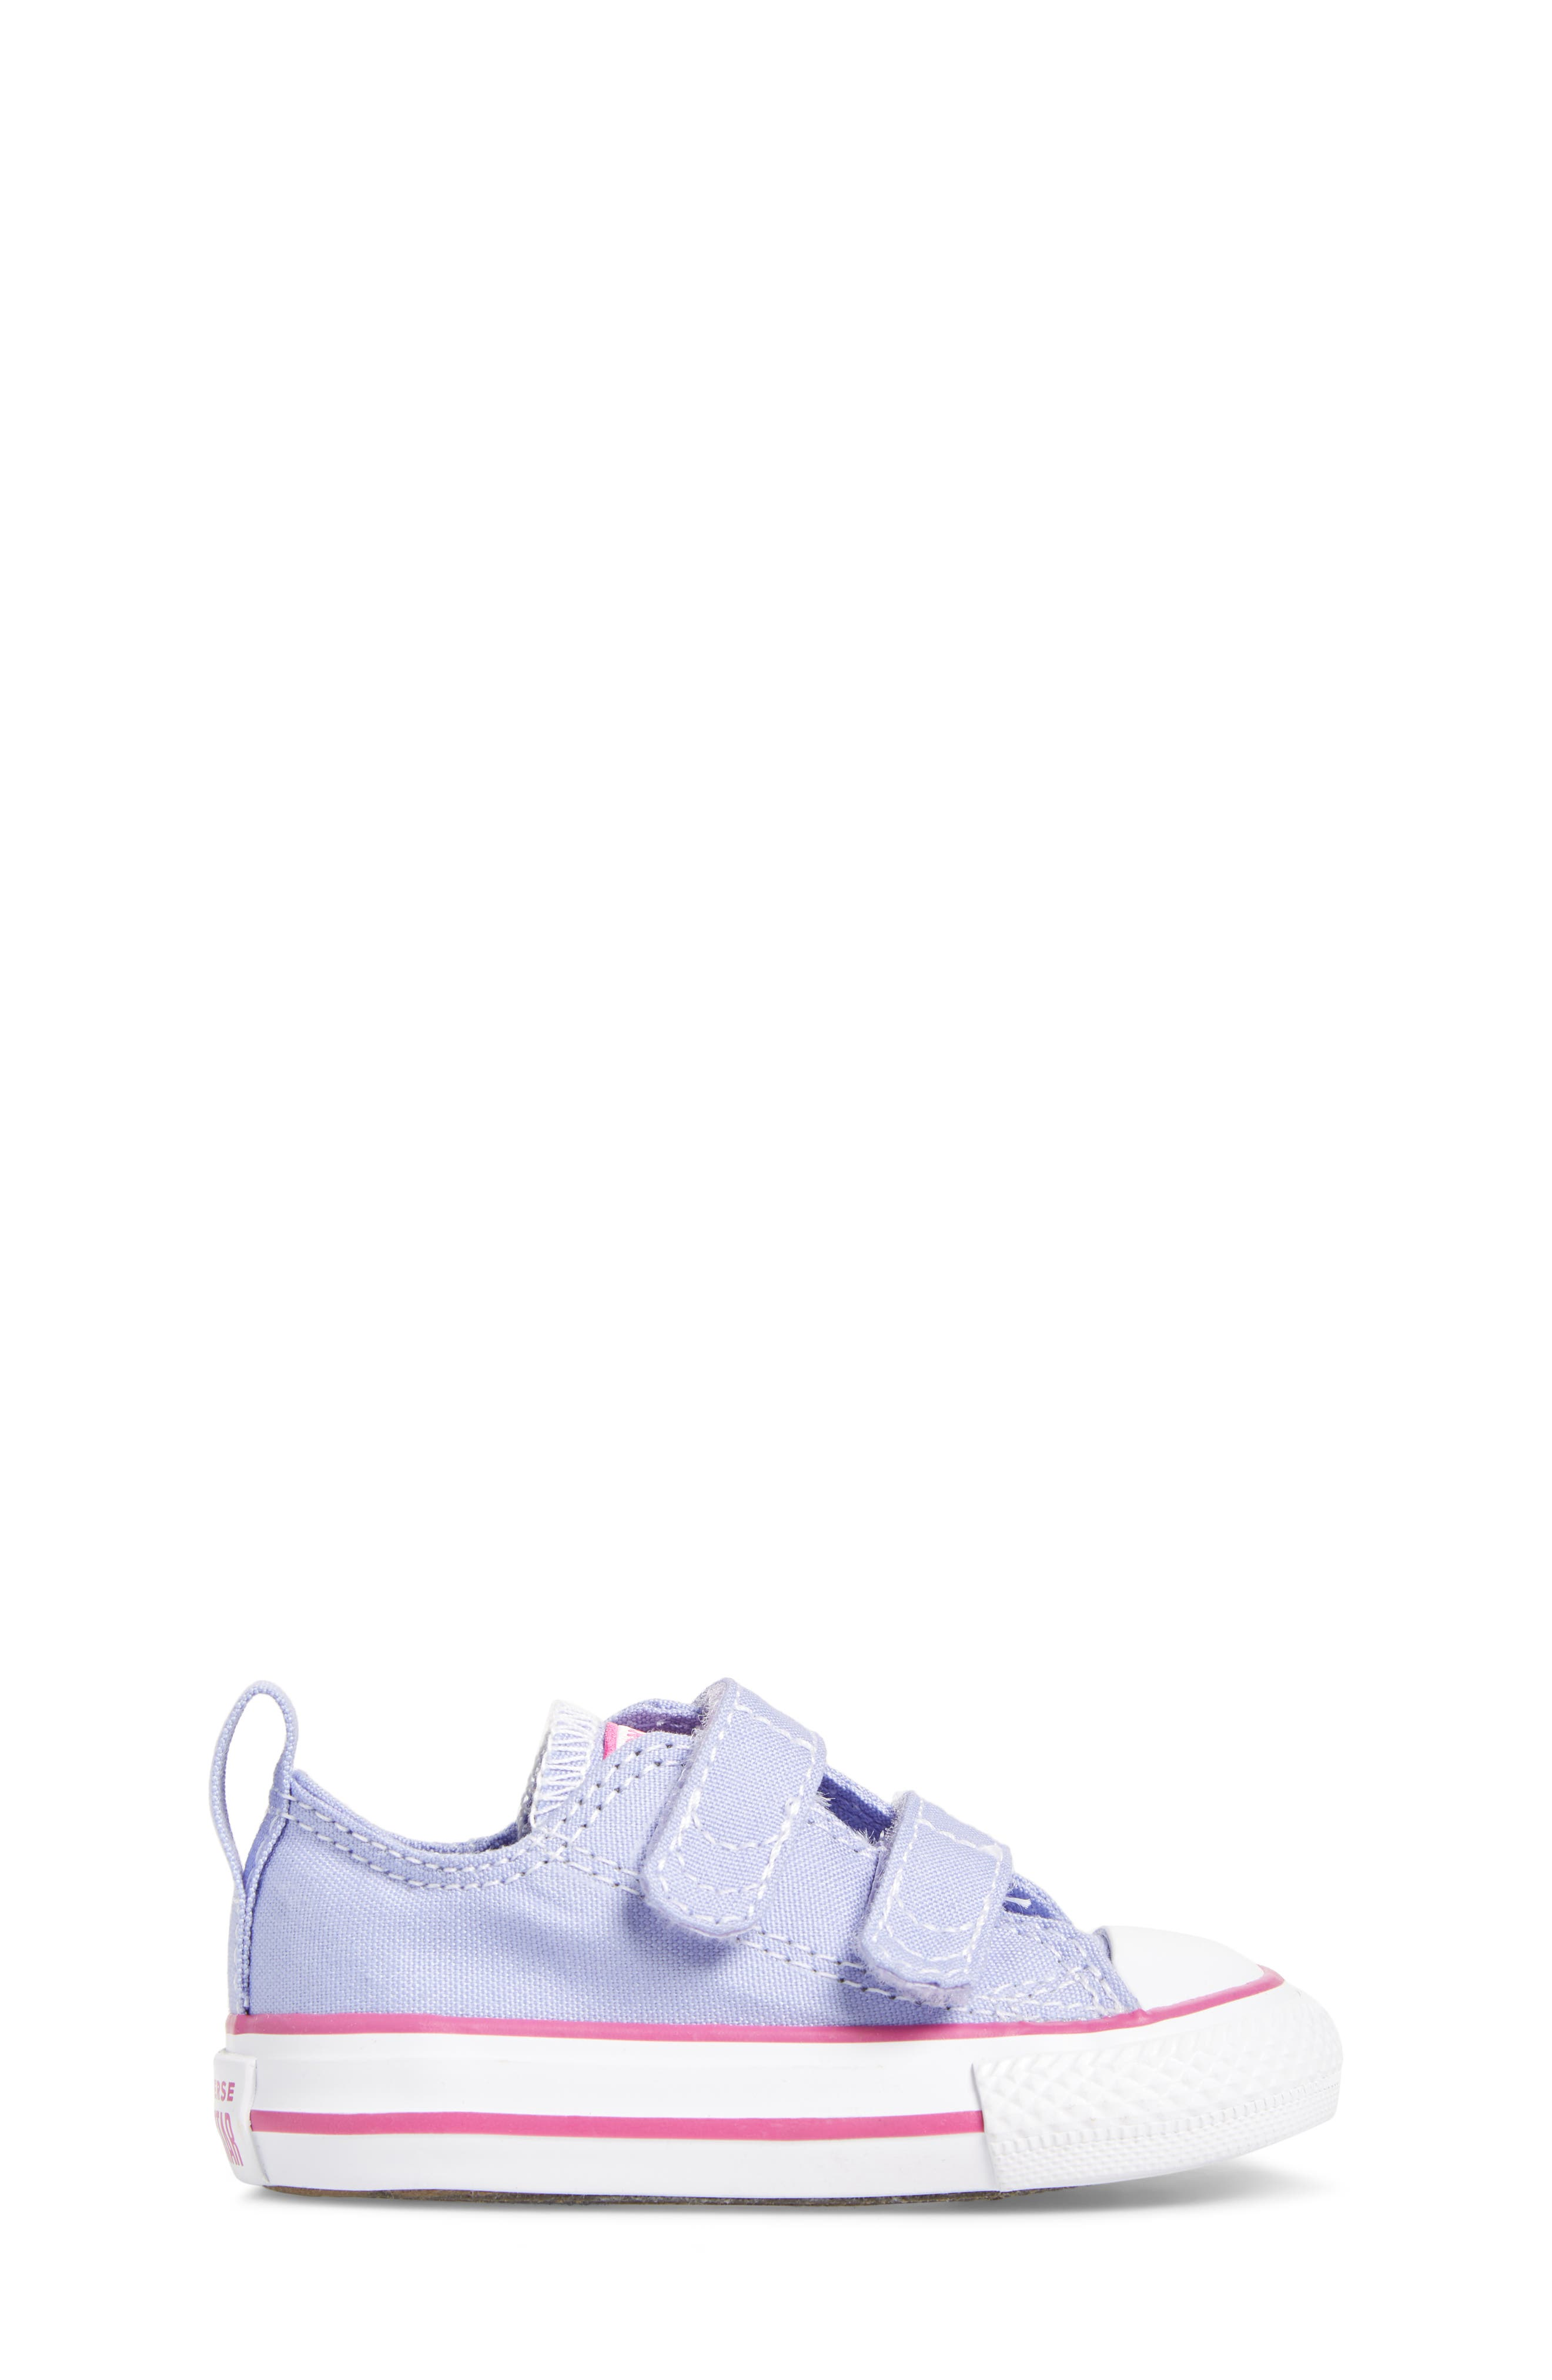 All Star<sup>®</sup> 2V Low Top Sneaker,                             Alternate thumbnail 3, color,                             Twilight Purple